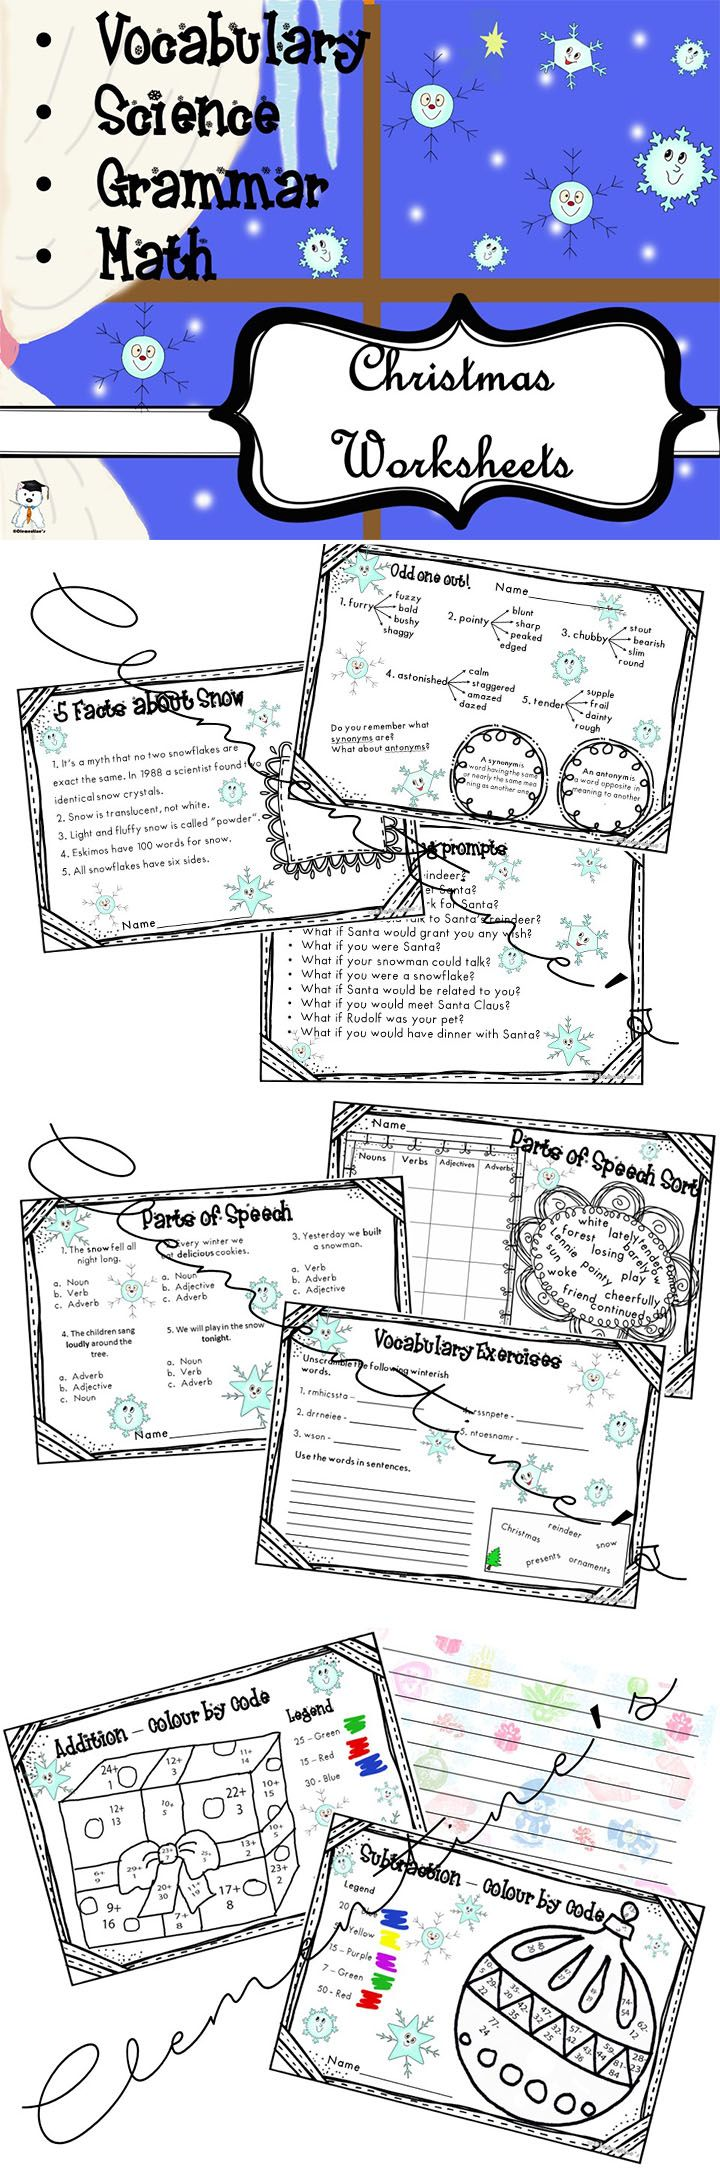 worksheet English Language Learners Worksheets 109 best my store images on pinterest teaching resources winter worksheets vocabulary grammar math writing prompts dollar deal english language learners